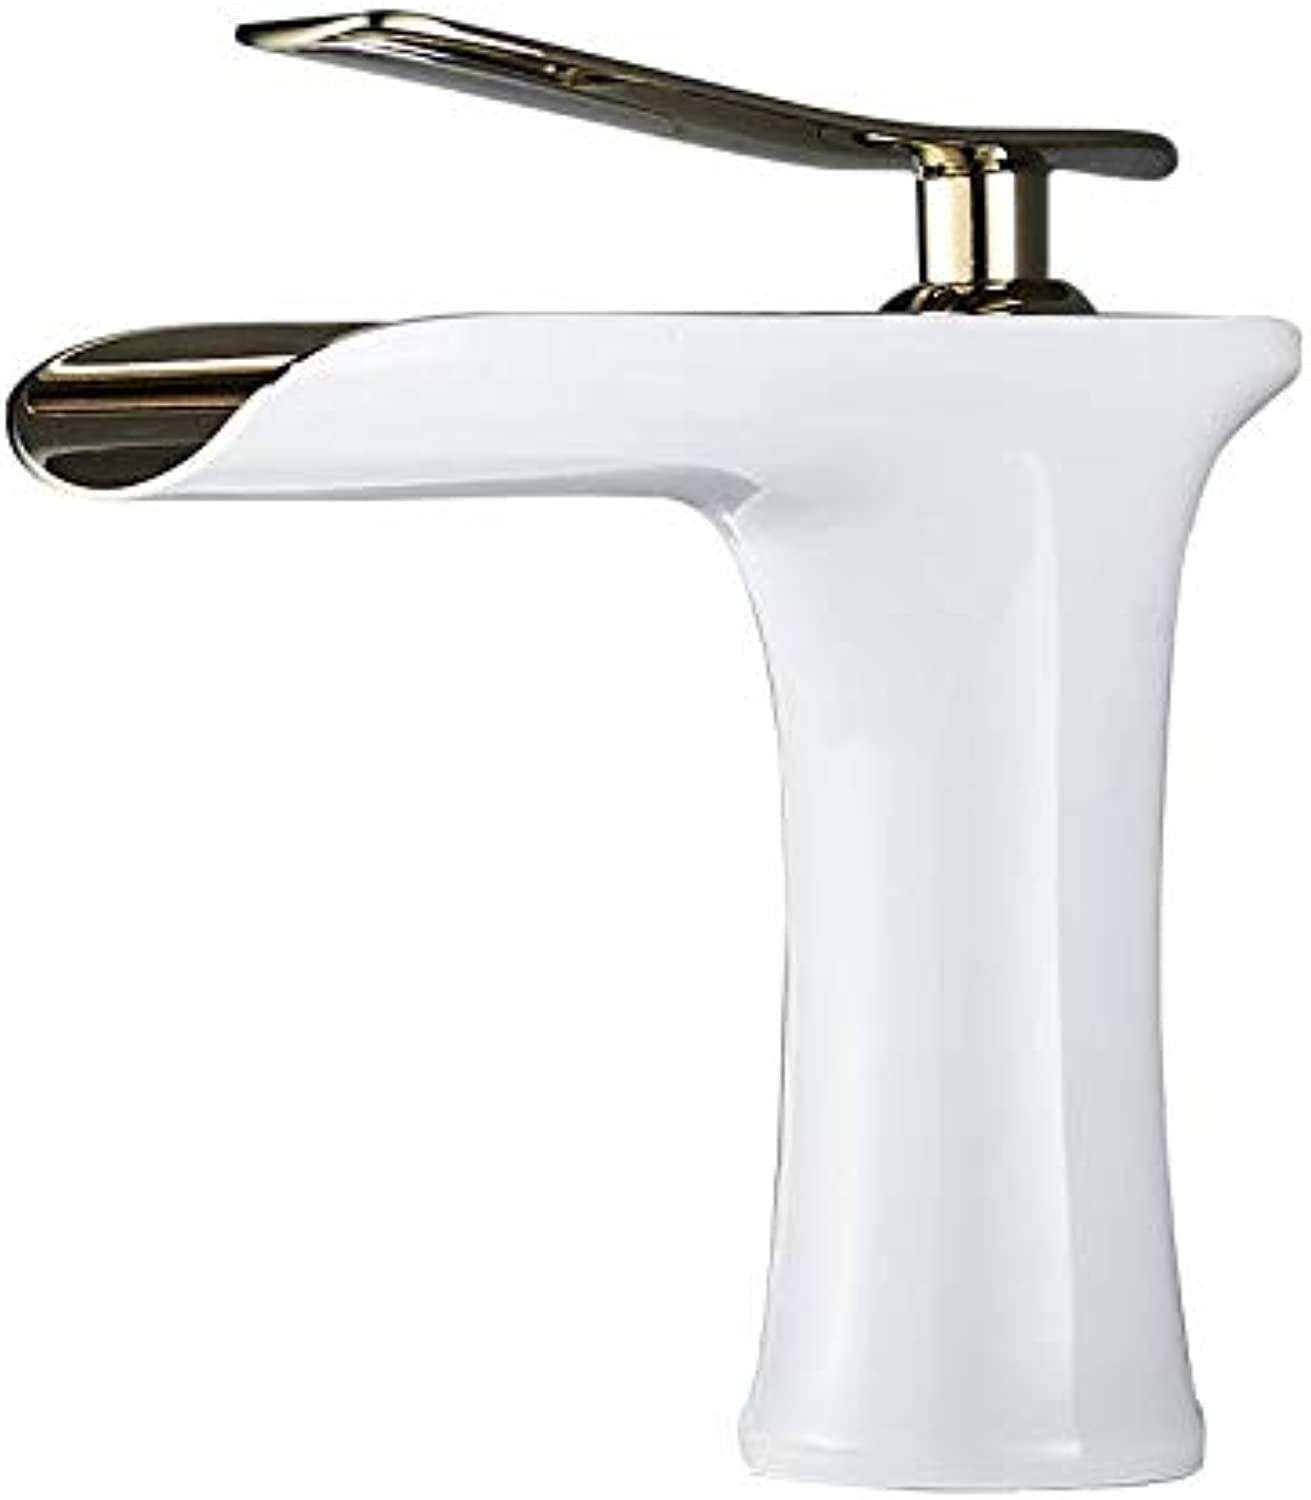 Bathroom Faucet Copper Basin Faucet Hot and Cold Wash Basin Heightening Above Counter Basin Faucet Nordic